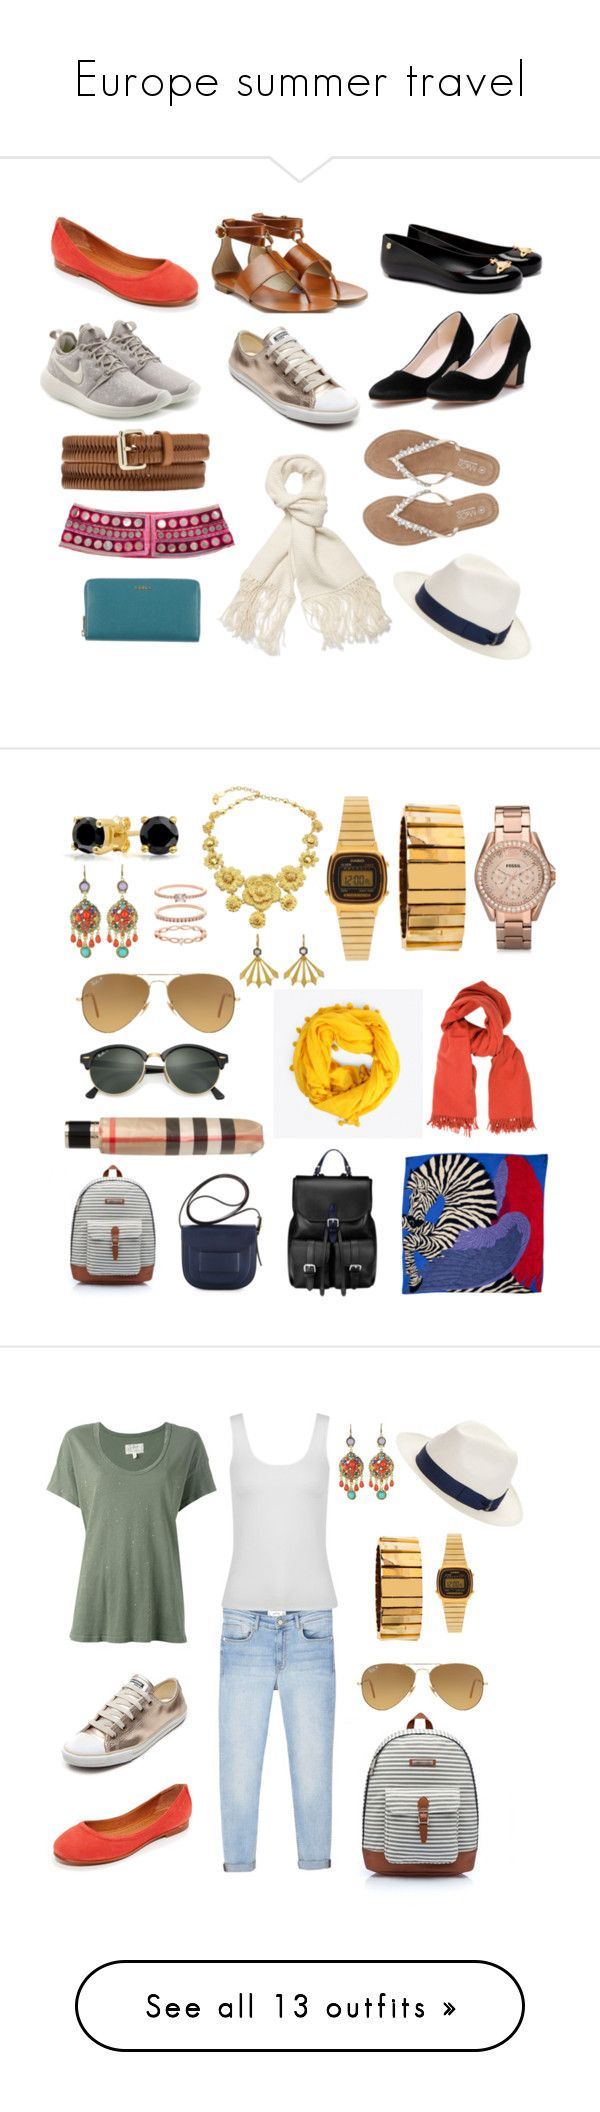 Europe summer travel by maria-elisa-trost on Polyvore featuring polyvore, fashion, style, Frye, NIKE, Melissa, Michael Kors, Alexander McQueen, Witchery, Helmut Lang, Borsalino, Furla, M&Co, clothing, Aspinal of London, Hermès, Accessorize, Bohemia, Burberry, Ray-Ban, WithChic, FOSSIL, Carlo Zini, Casio, Bling Jewelry, Tory Burch, Lele Sadoughi, Cathy Waterman, MANGO, Current/Elliott, Oasis, J Brand, Frame, Missoni, R13, prAna, Yves Saint Laurent, Tom Ford, Gap, T By Alexander Wang, Armani…